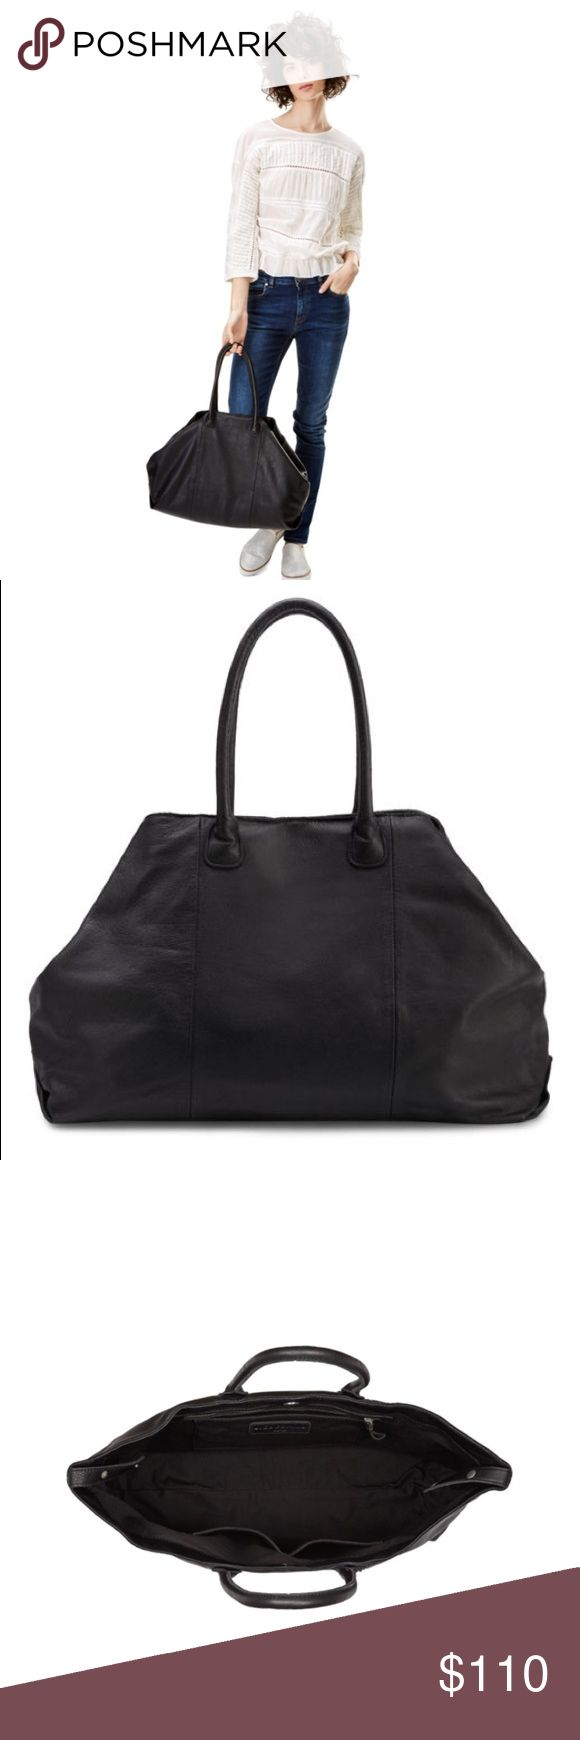 Liebeskind MillaE EUC. Black. Two tiny spots. Buttery soft 100% cowhide leather. Only selling b/c I just got another bag I will be using more. Two other colors still on sale at bluefly.com. *actual pic to be updated Liebeskind Bags Totes